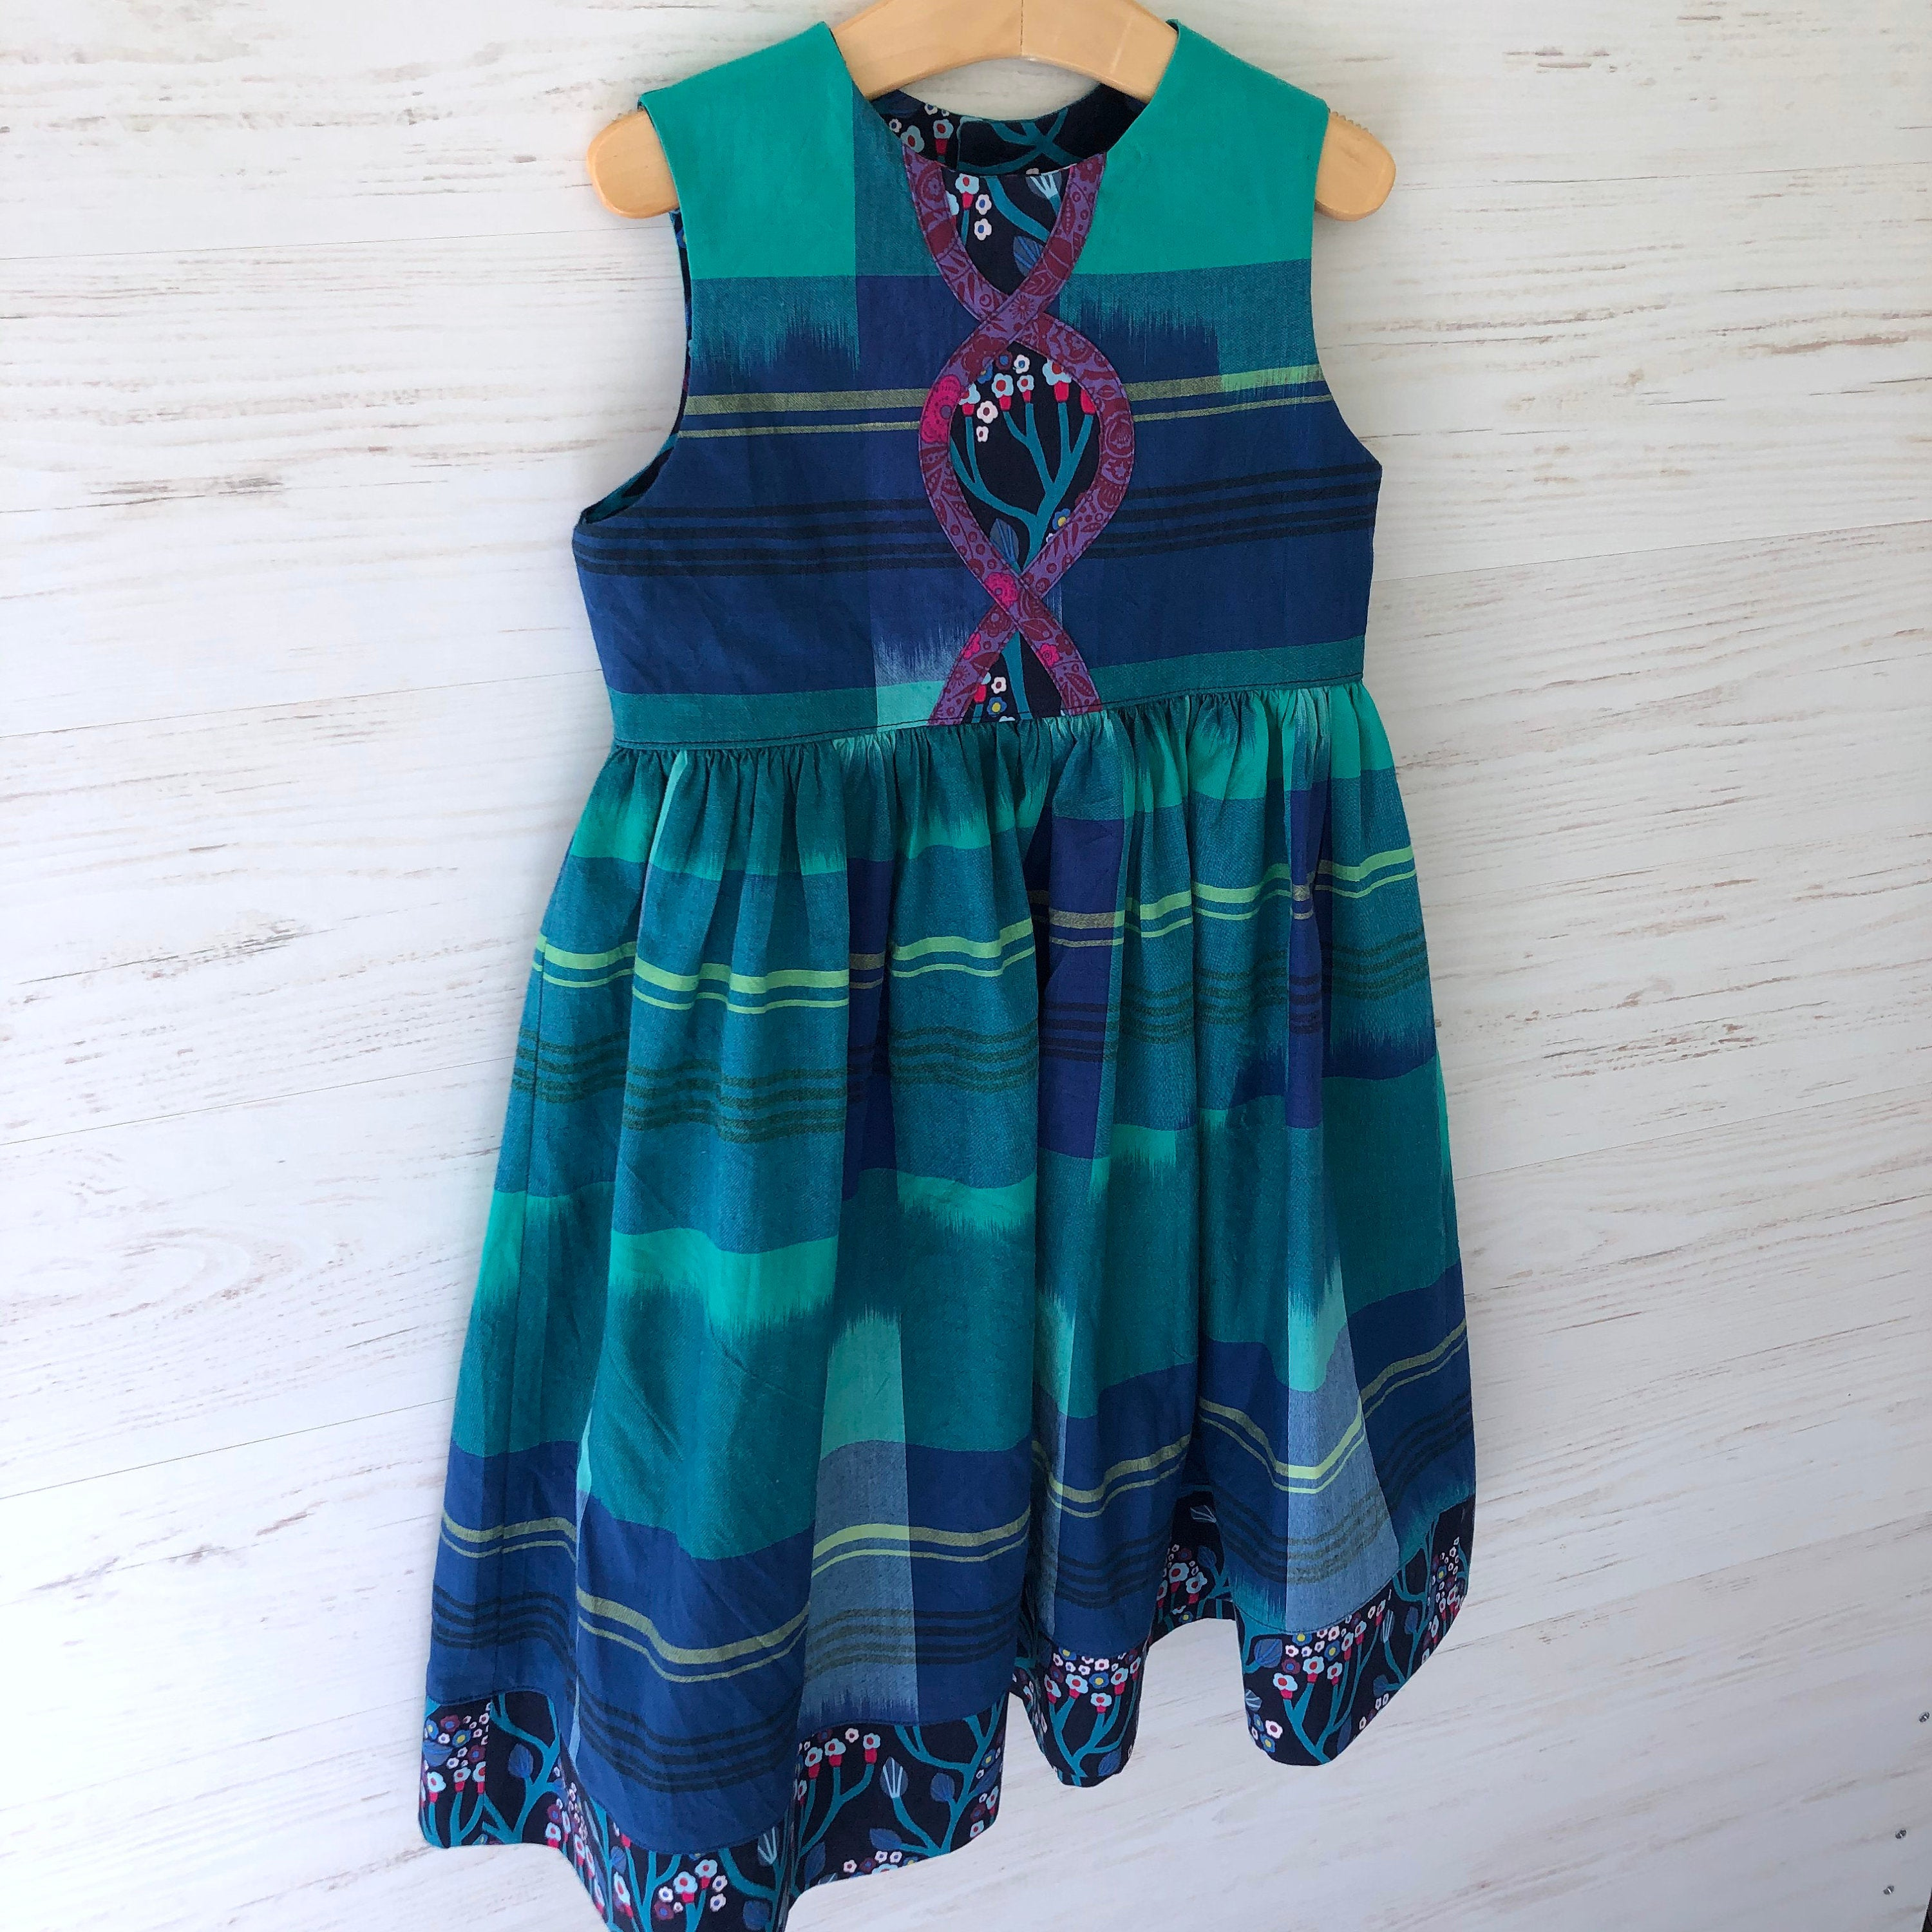 Intertwine dress in Blue and Jade plaid, sizes 2T 3T 4T 5 6 - little girl Pearl